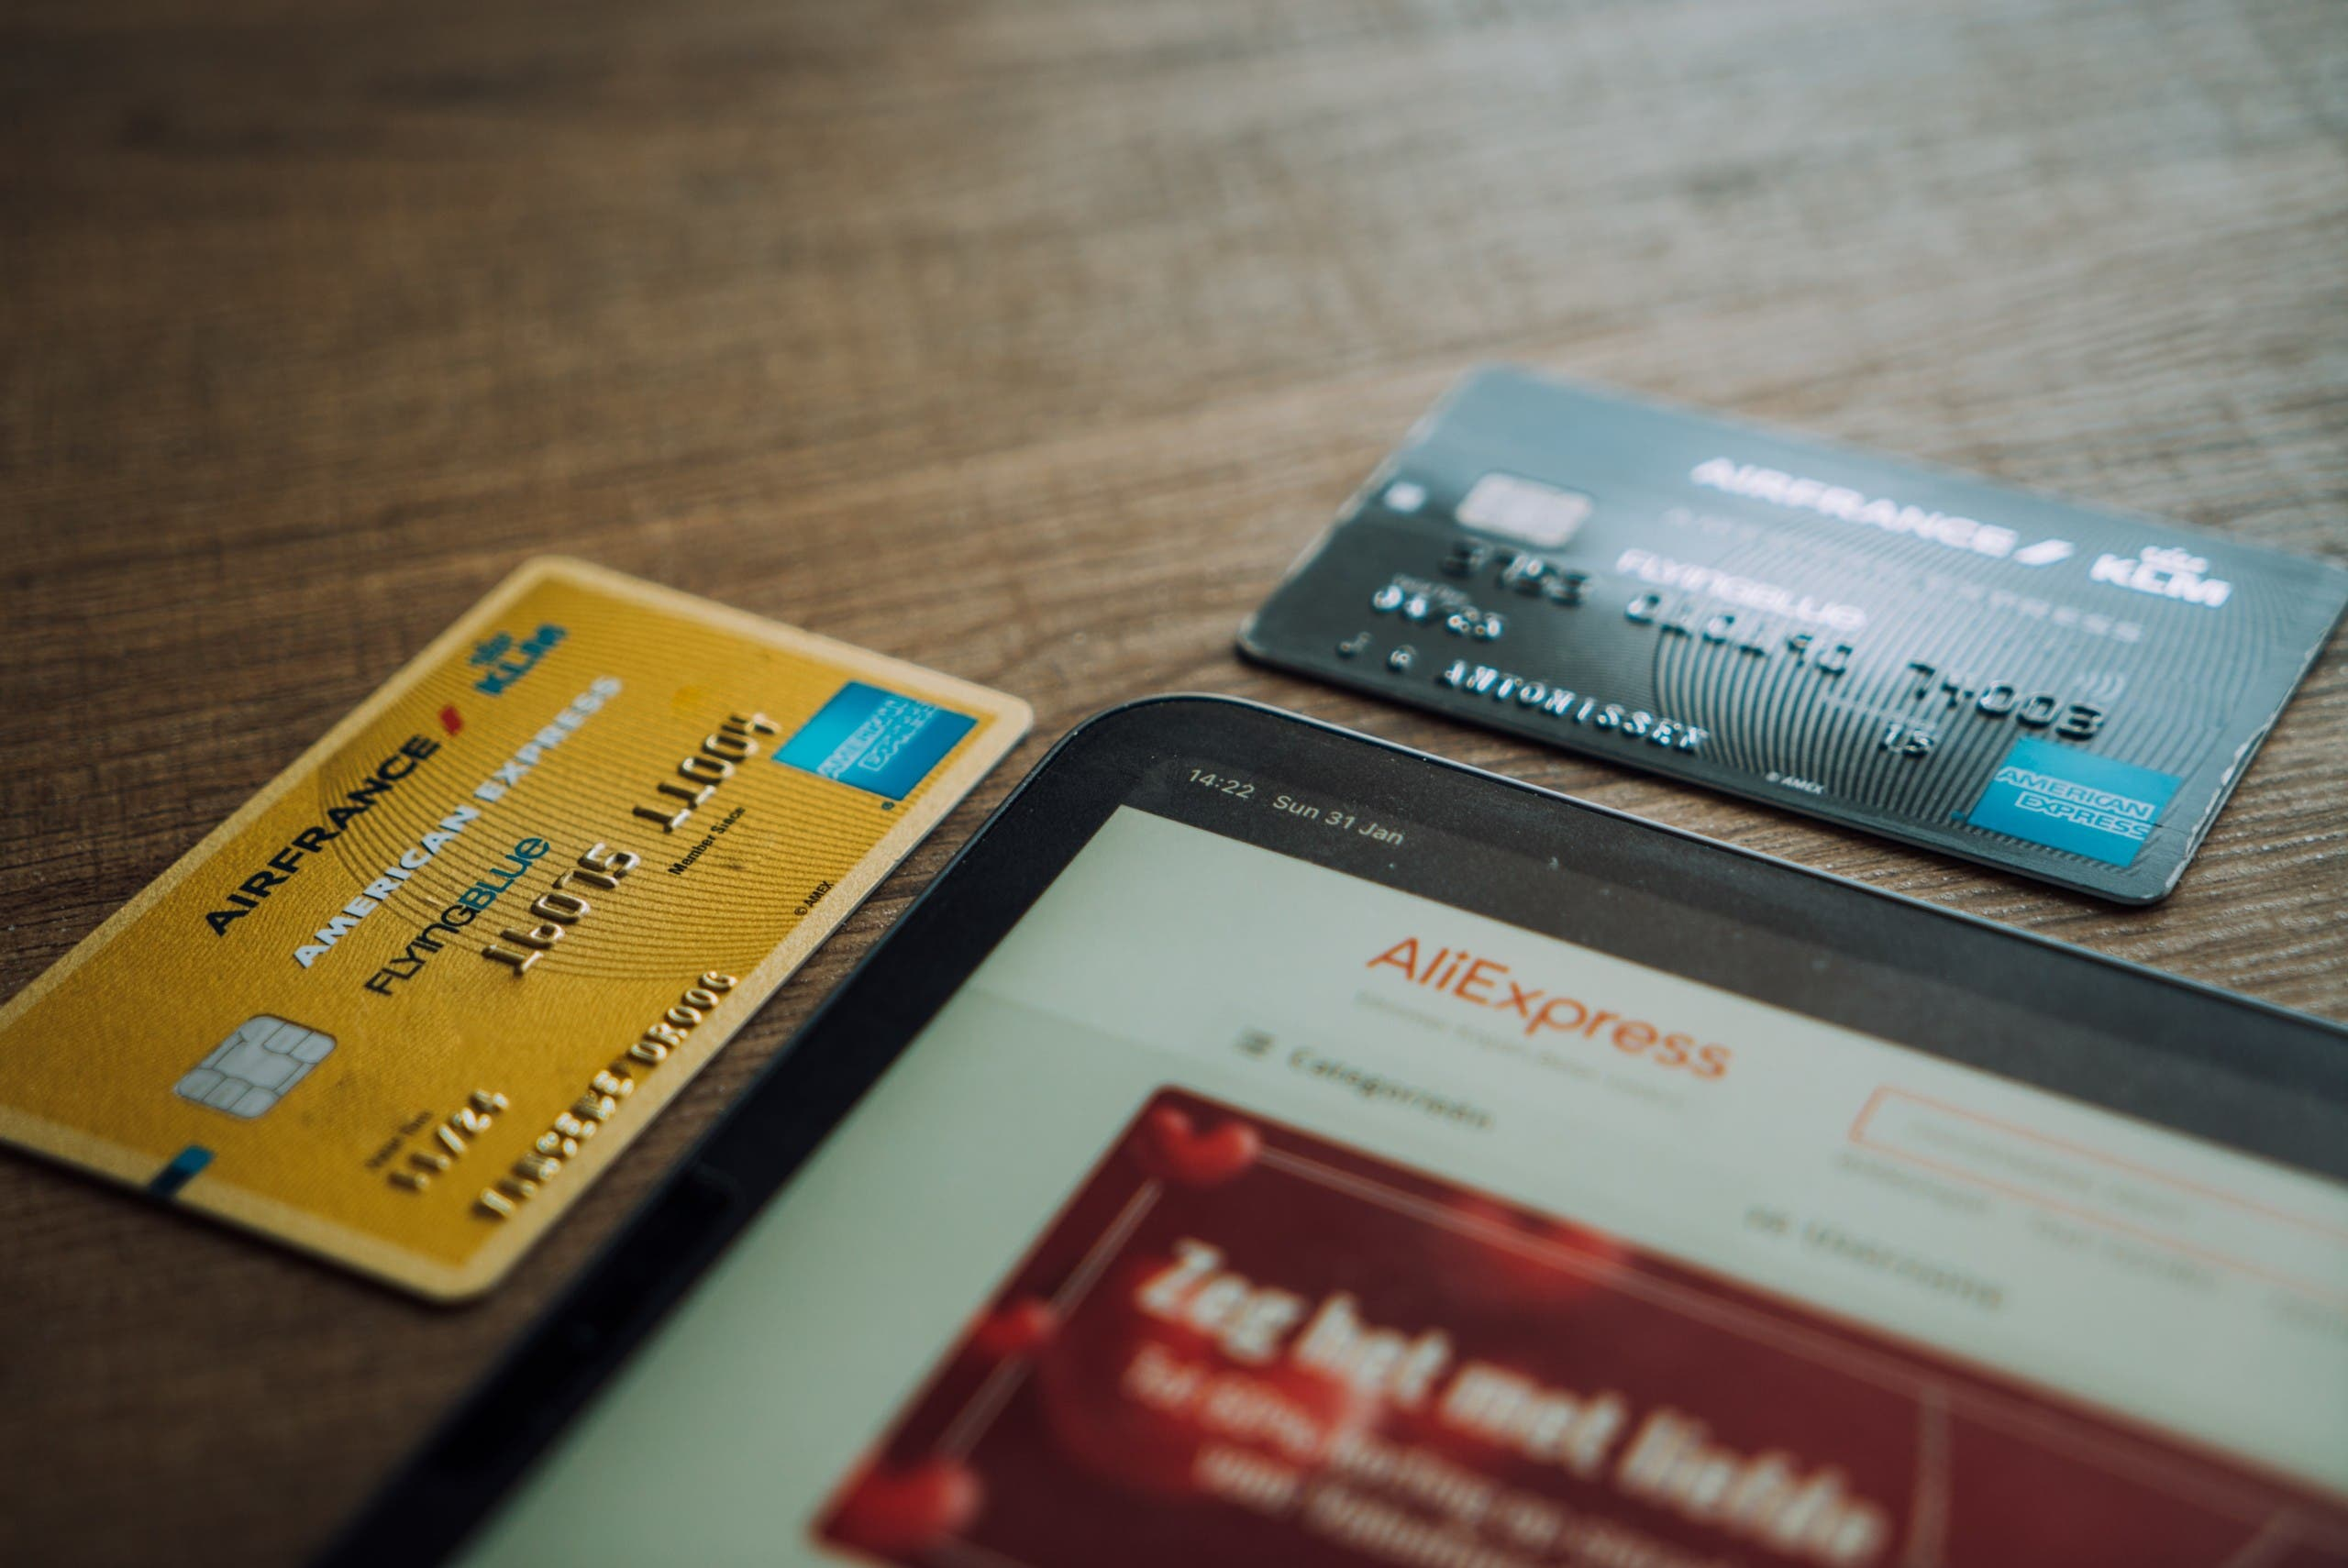 Two debit cards laid out next to an iPad displaying ecommerce website AliExpress. (Unsplash, Cardmapr.nl)